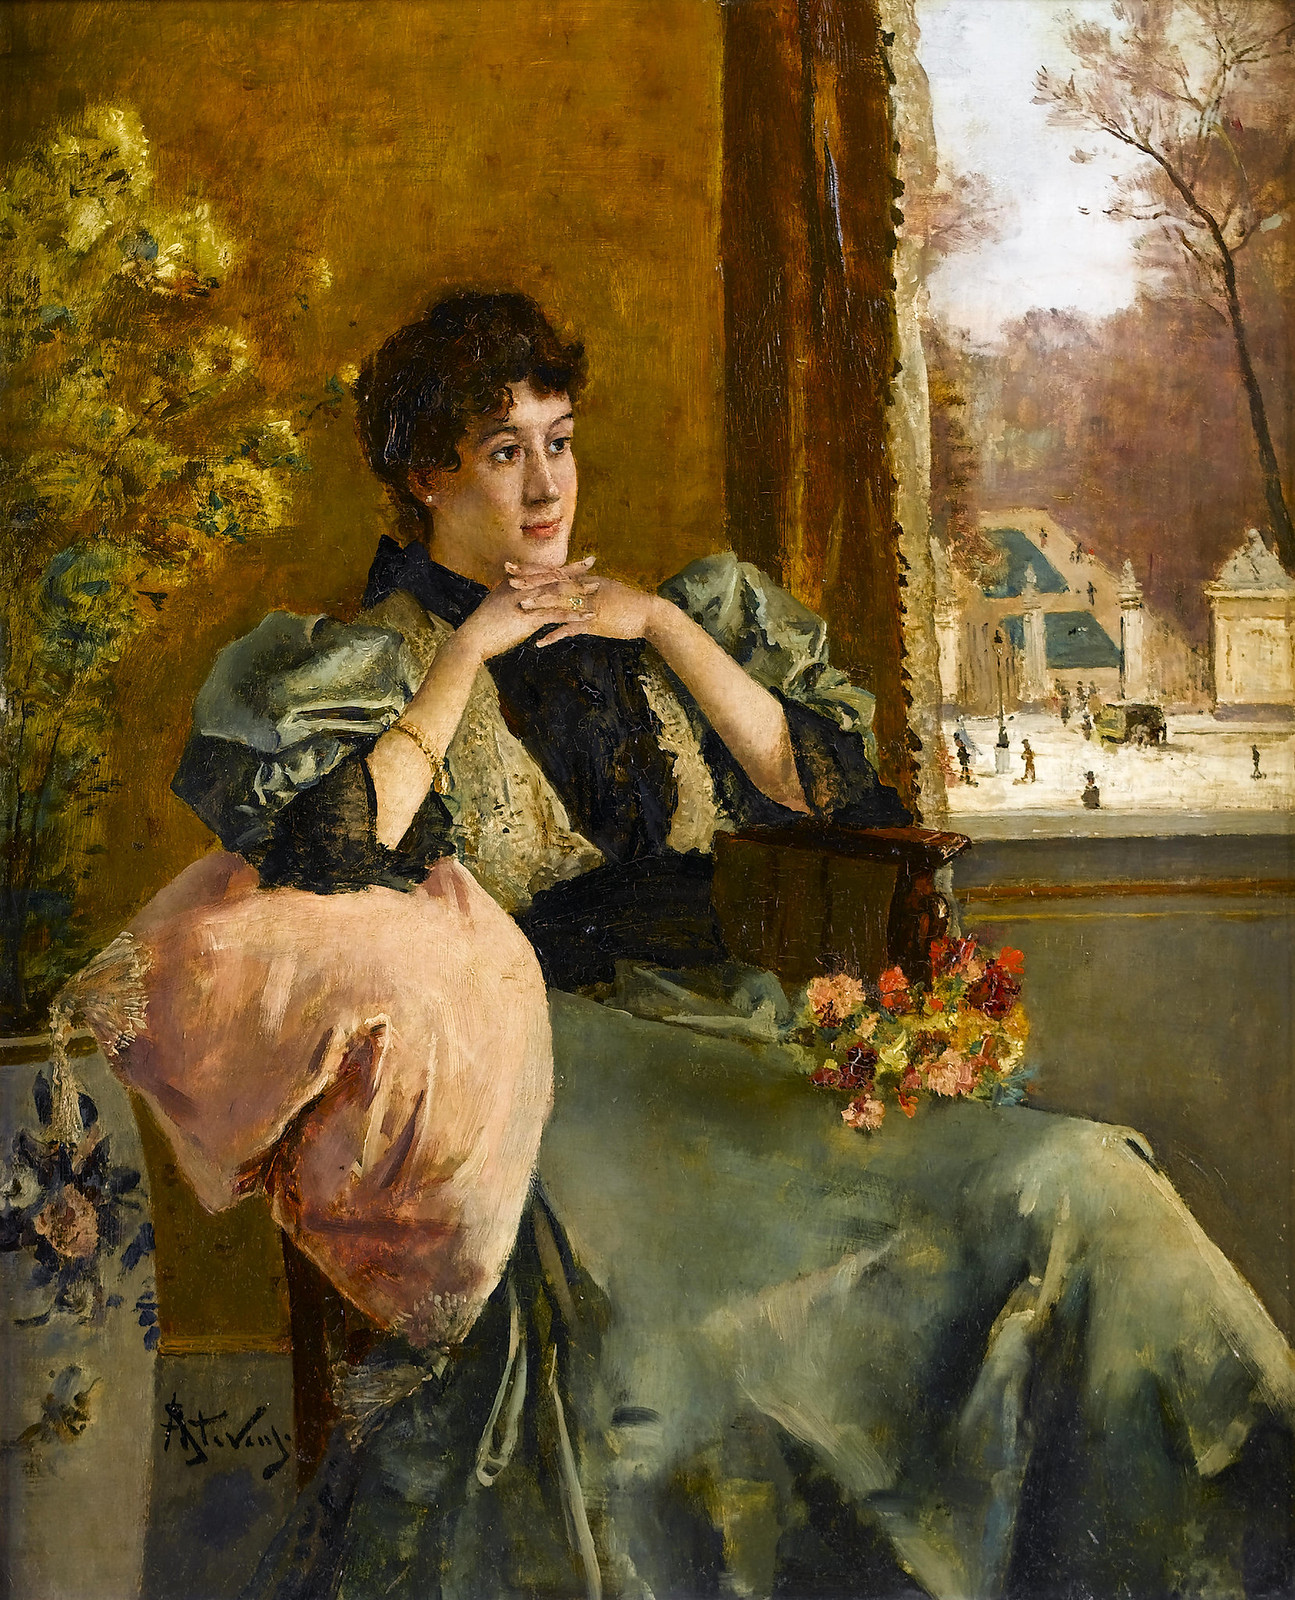 Pensive Woman Near a Window by Alfred Stevens, 1823-1906